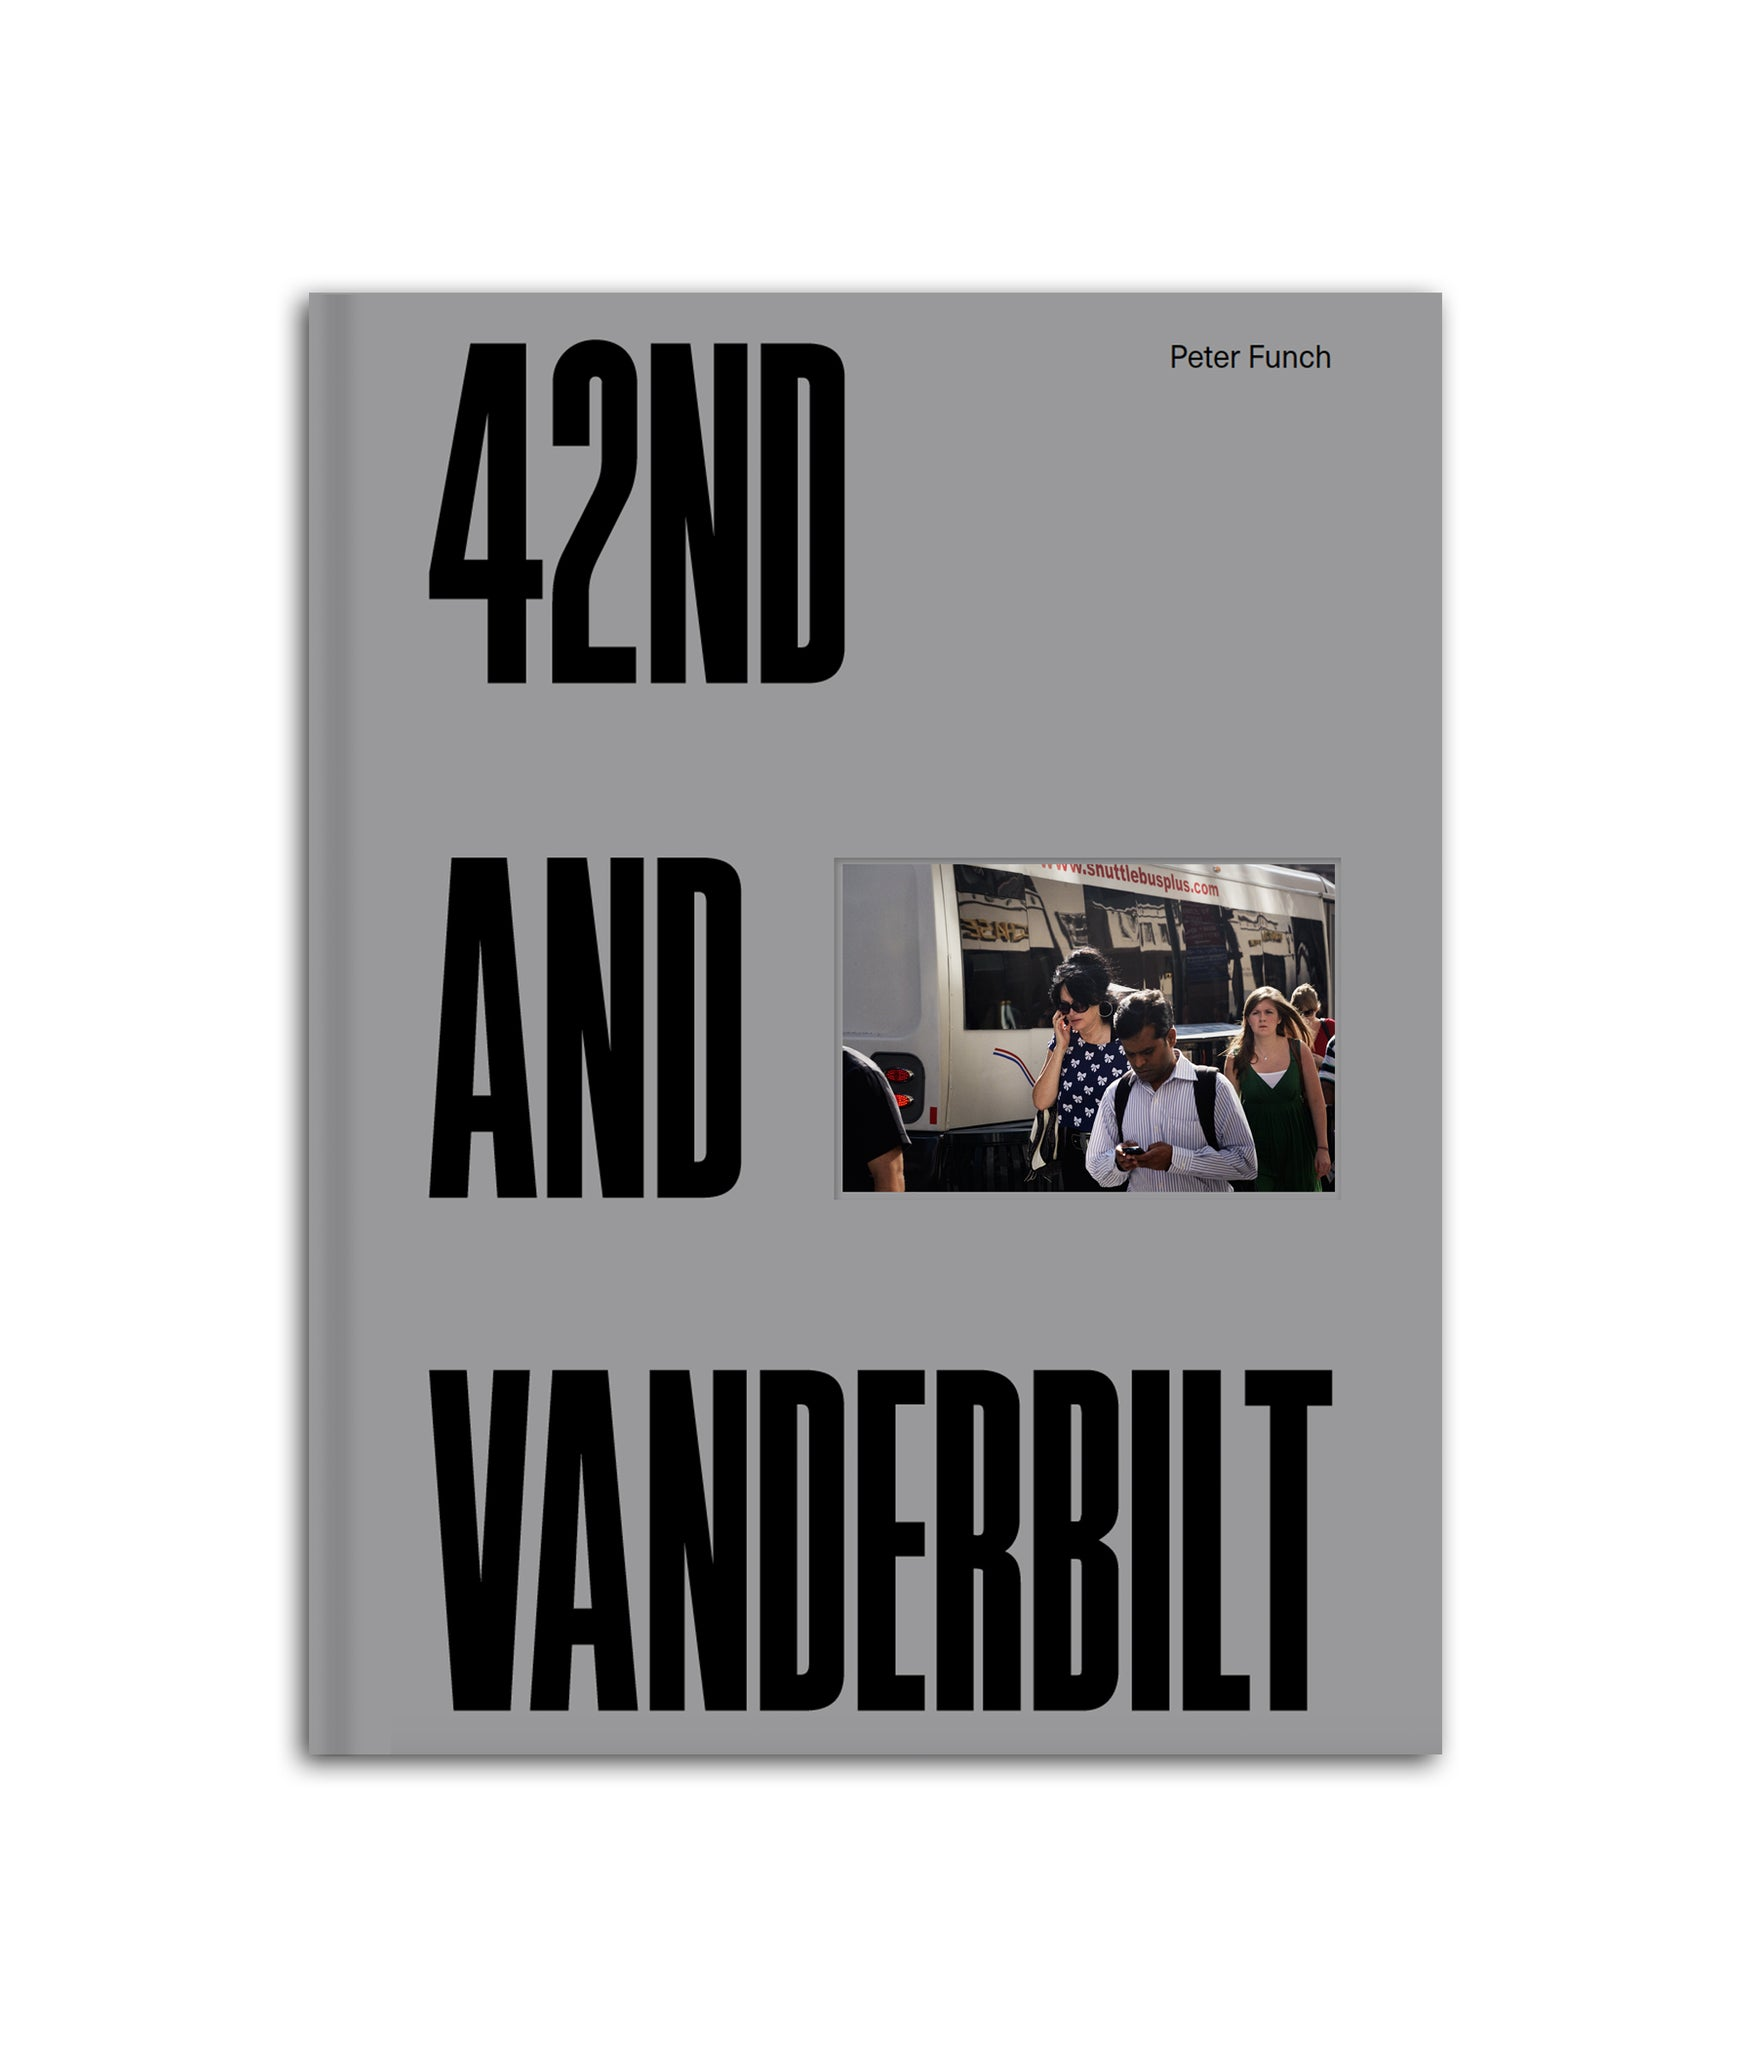 42nd and Vanderbilt - Special Edition Slipcase with Prints